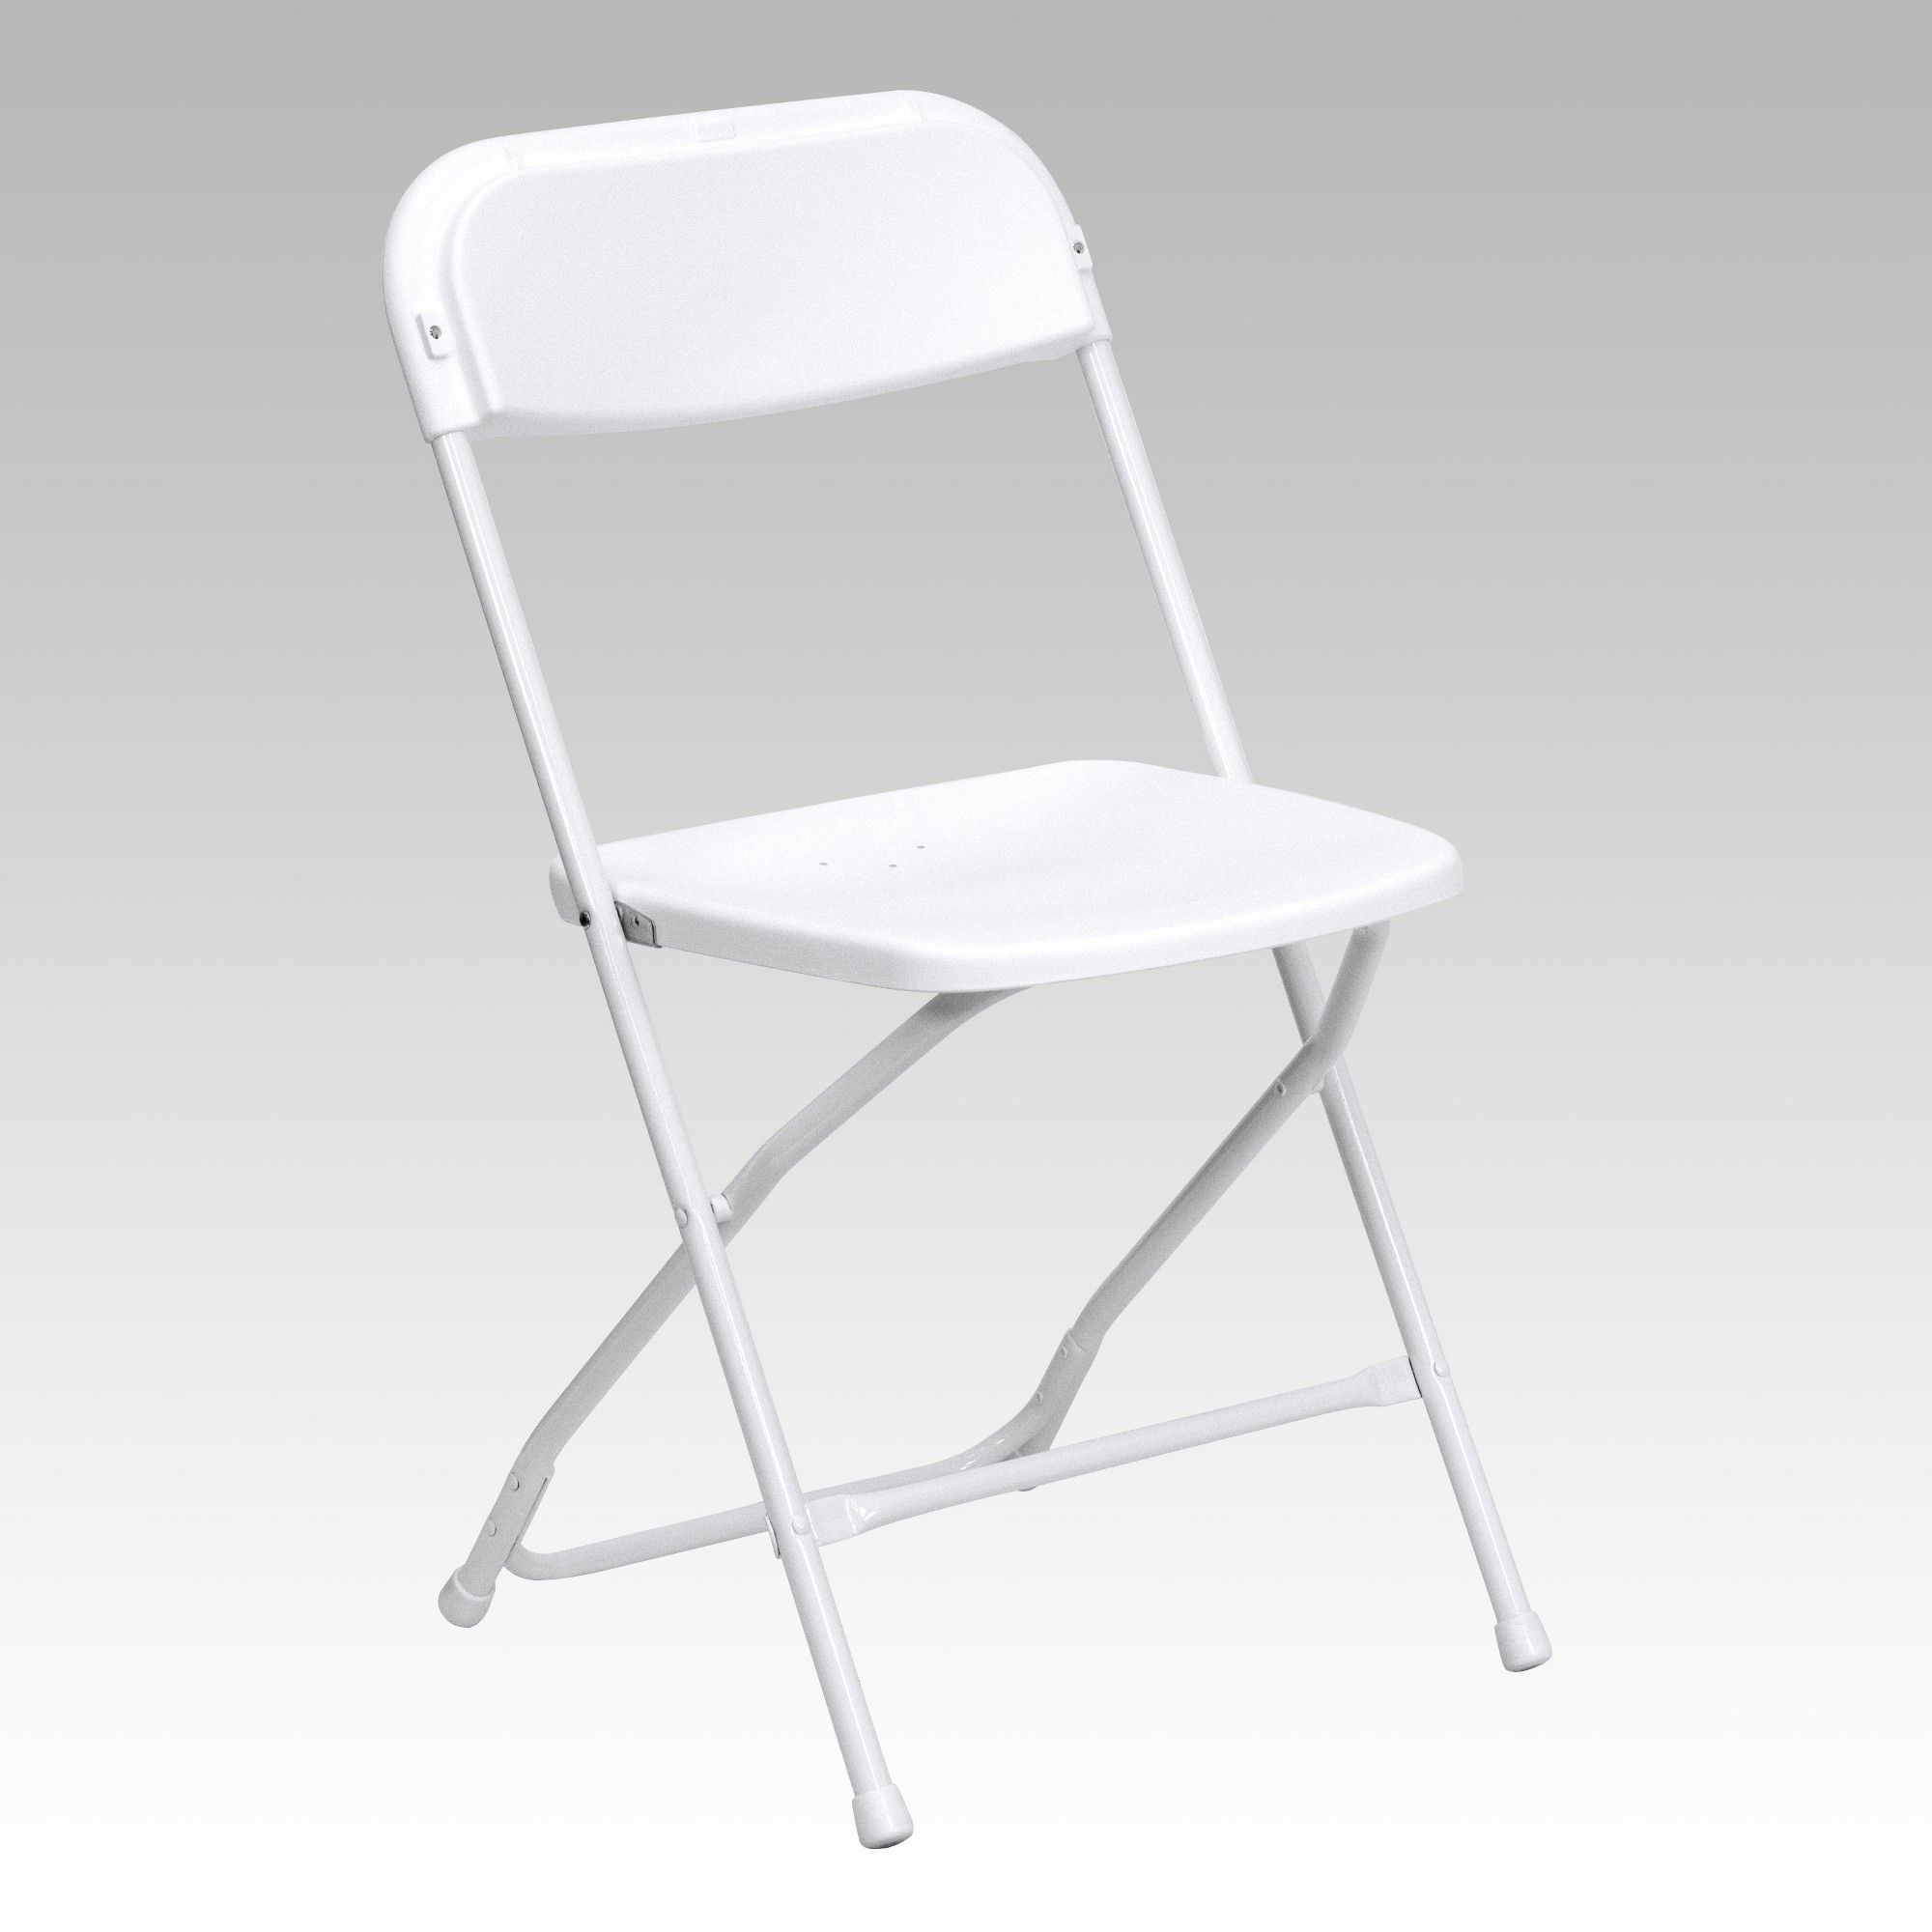 Riverstone Furniture Collection Plastic Folding Chair White